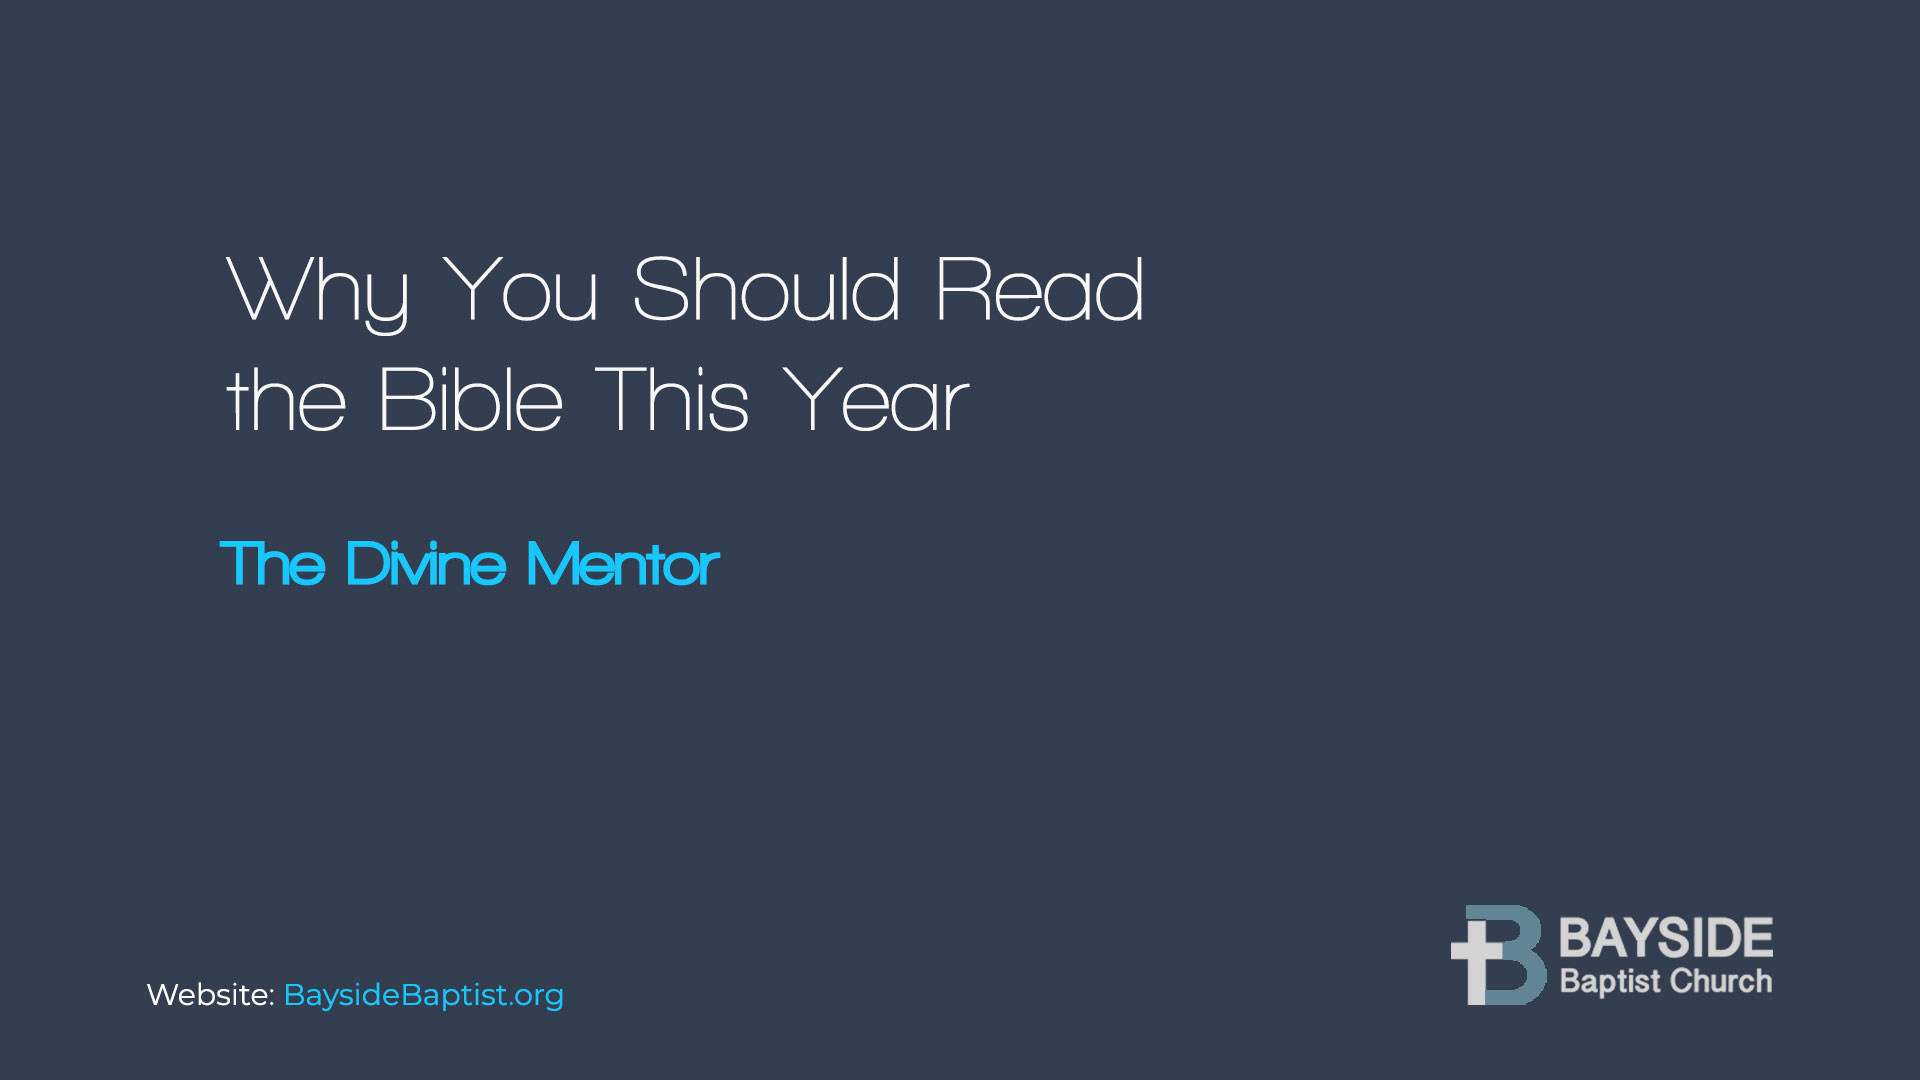 Why You Should Read the Bible This Year Image